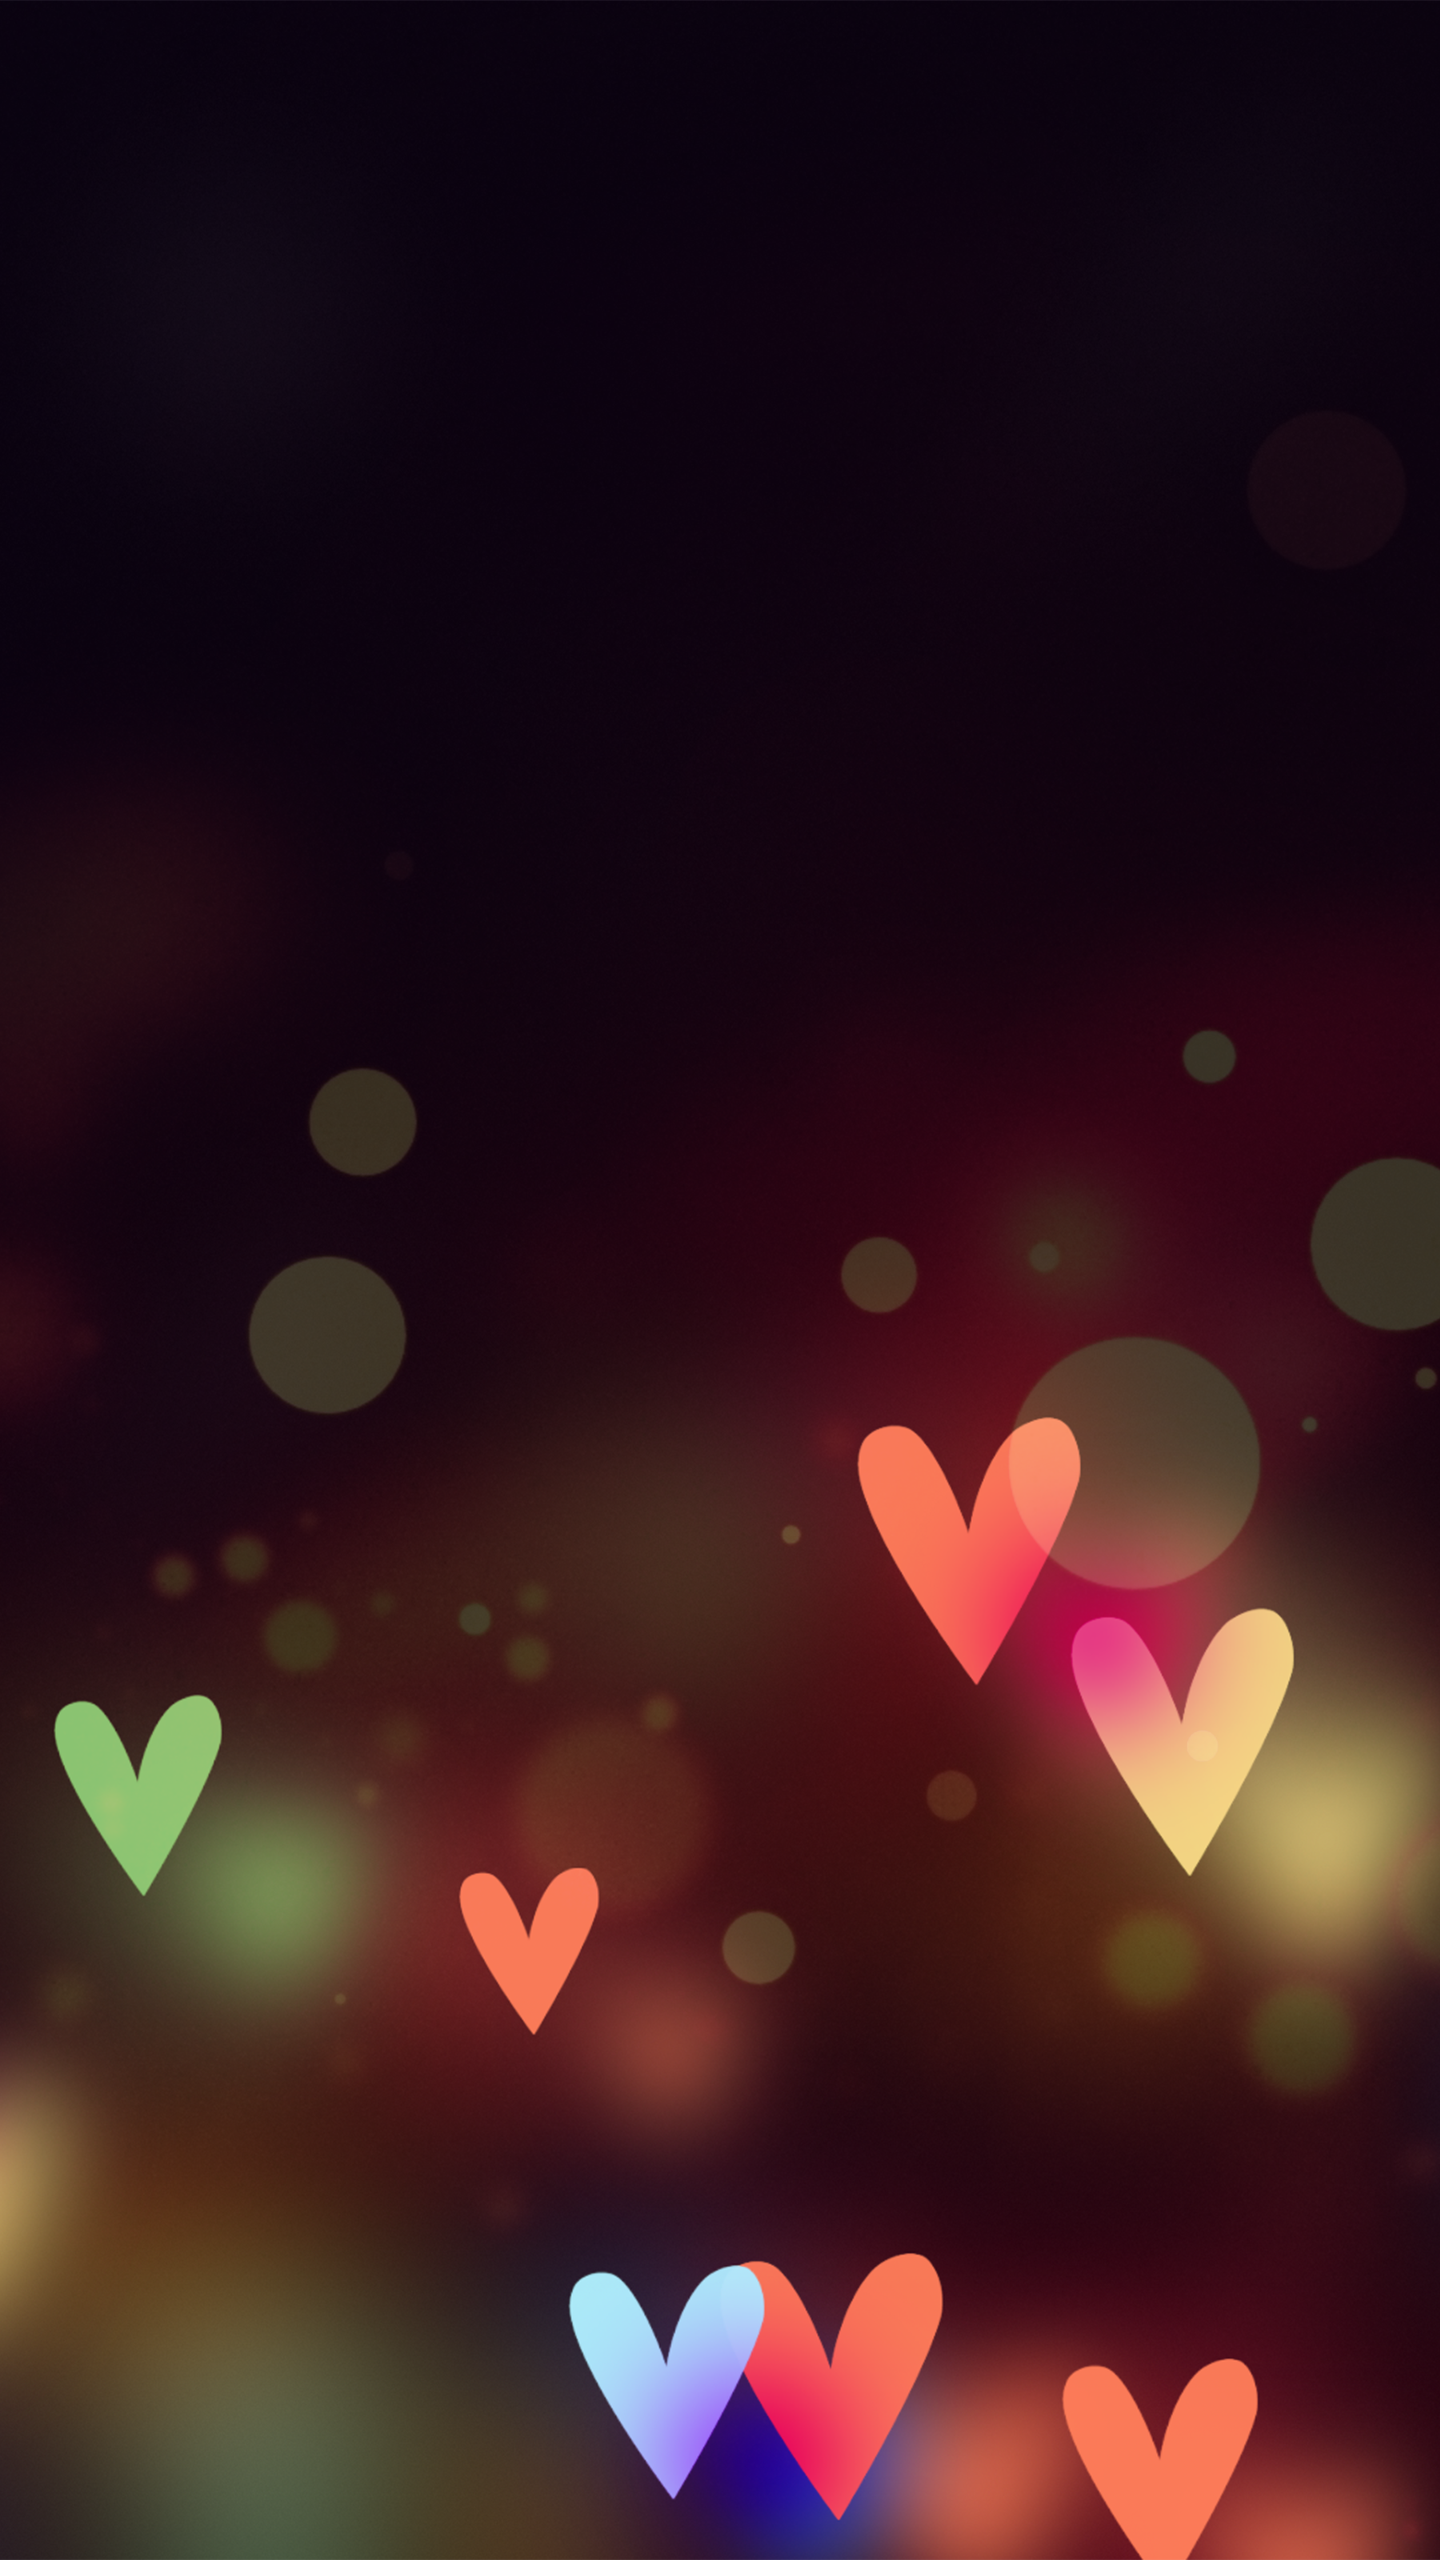 Love Wallpaper For Iphone 5c : Unique Love Wallpaper For Iphone